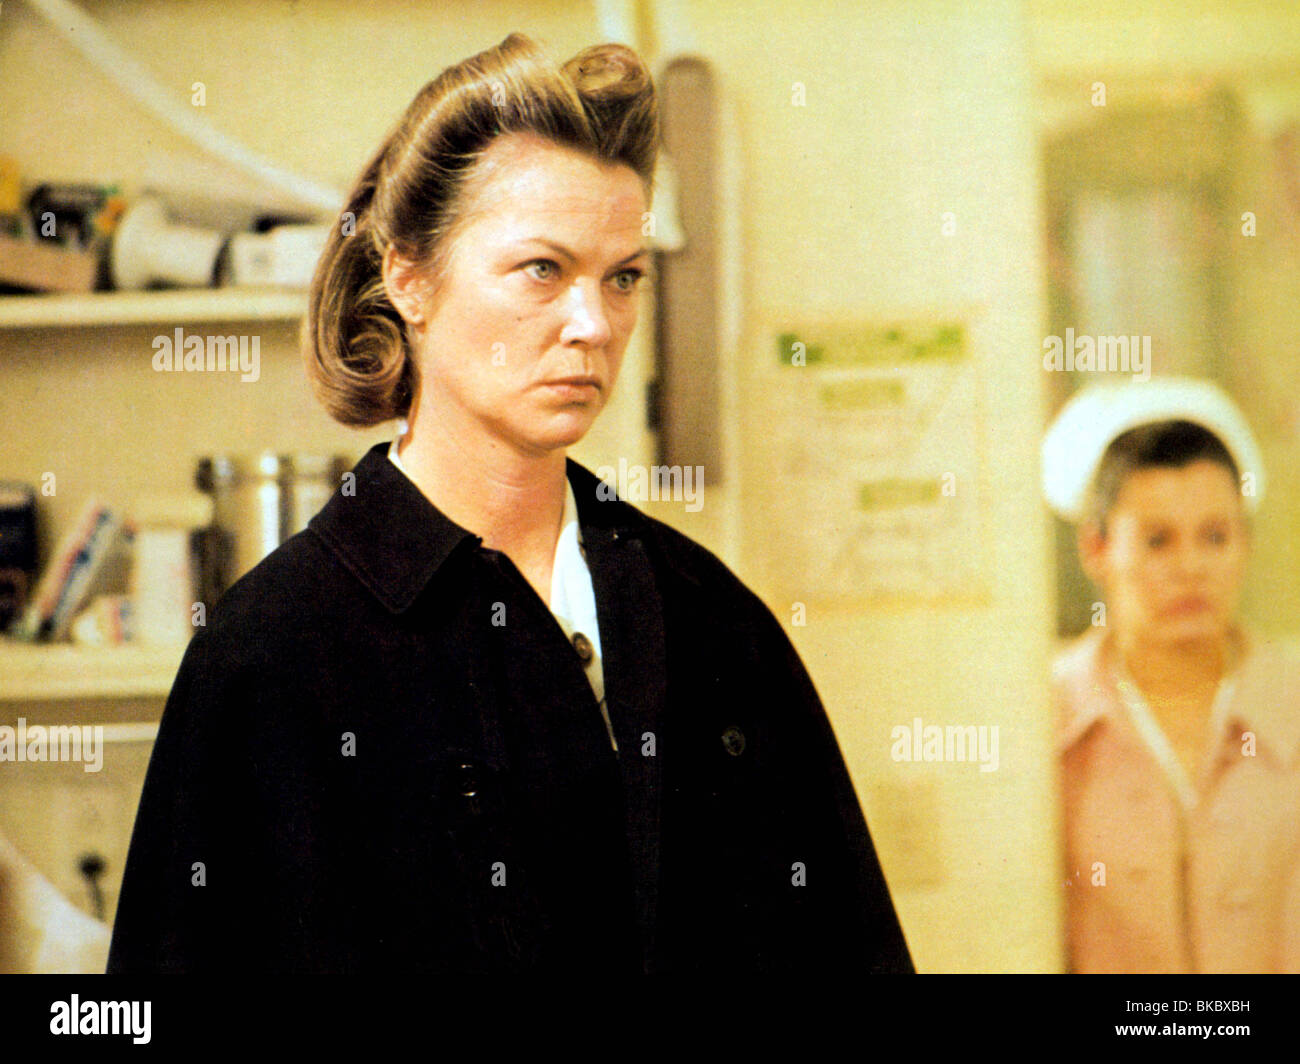 ONE FLEW OVER THE CUCKOO'S NEST(1975) LOUISE FLETCHER OFC 001FOH - Stock Image